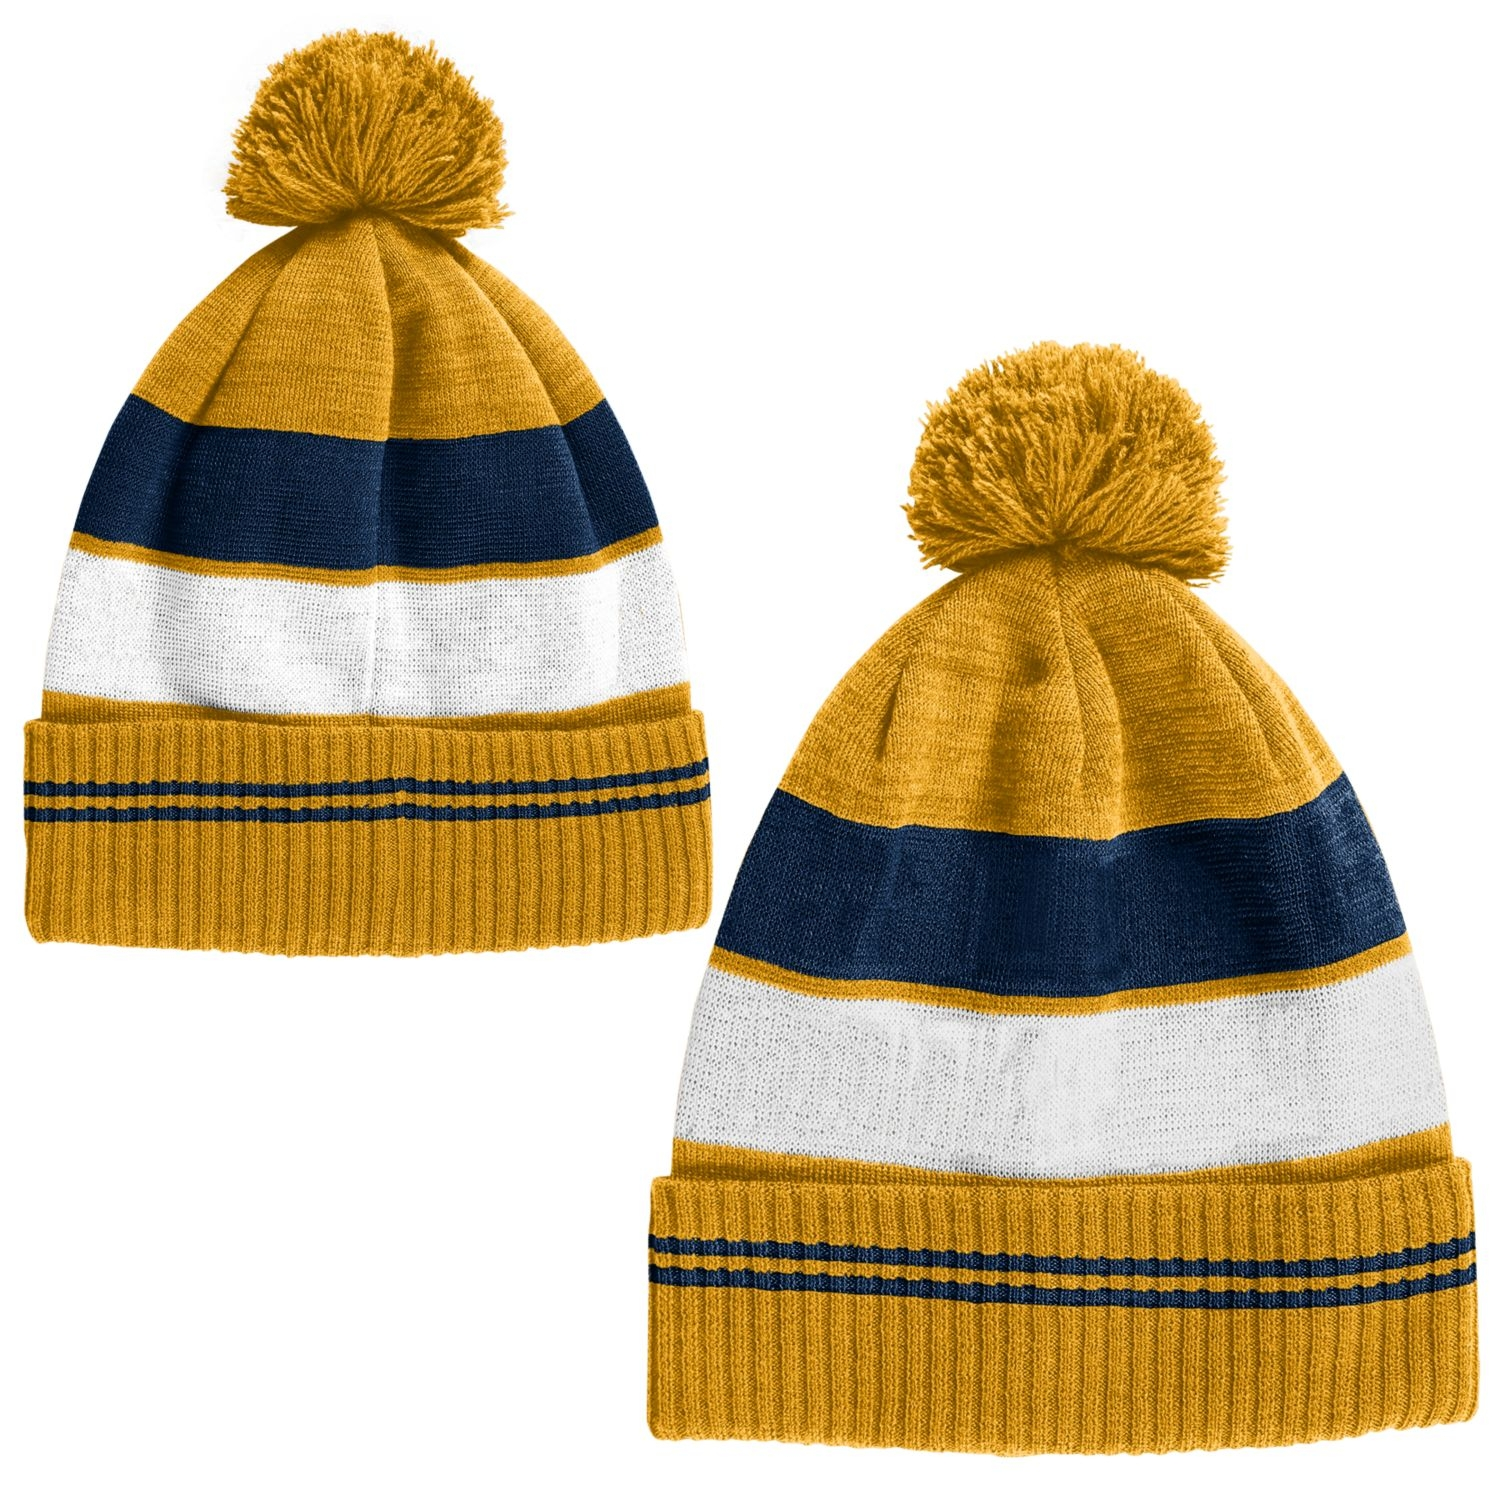 University of California Berkeley Under Armour POM Beanie